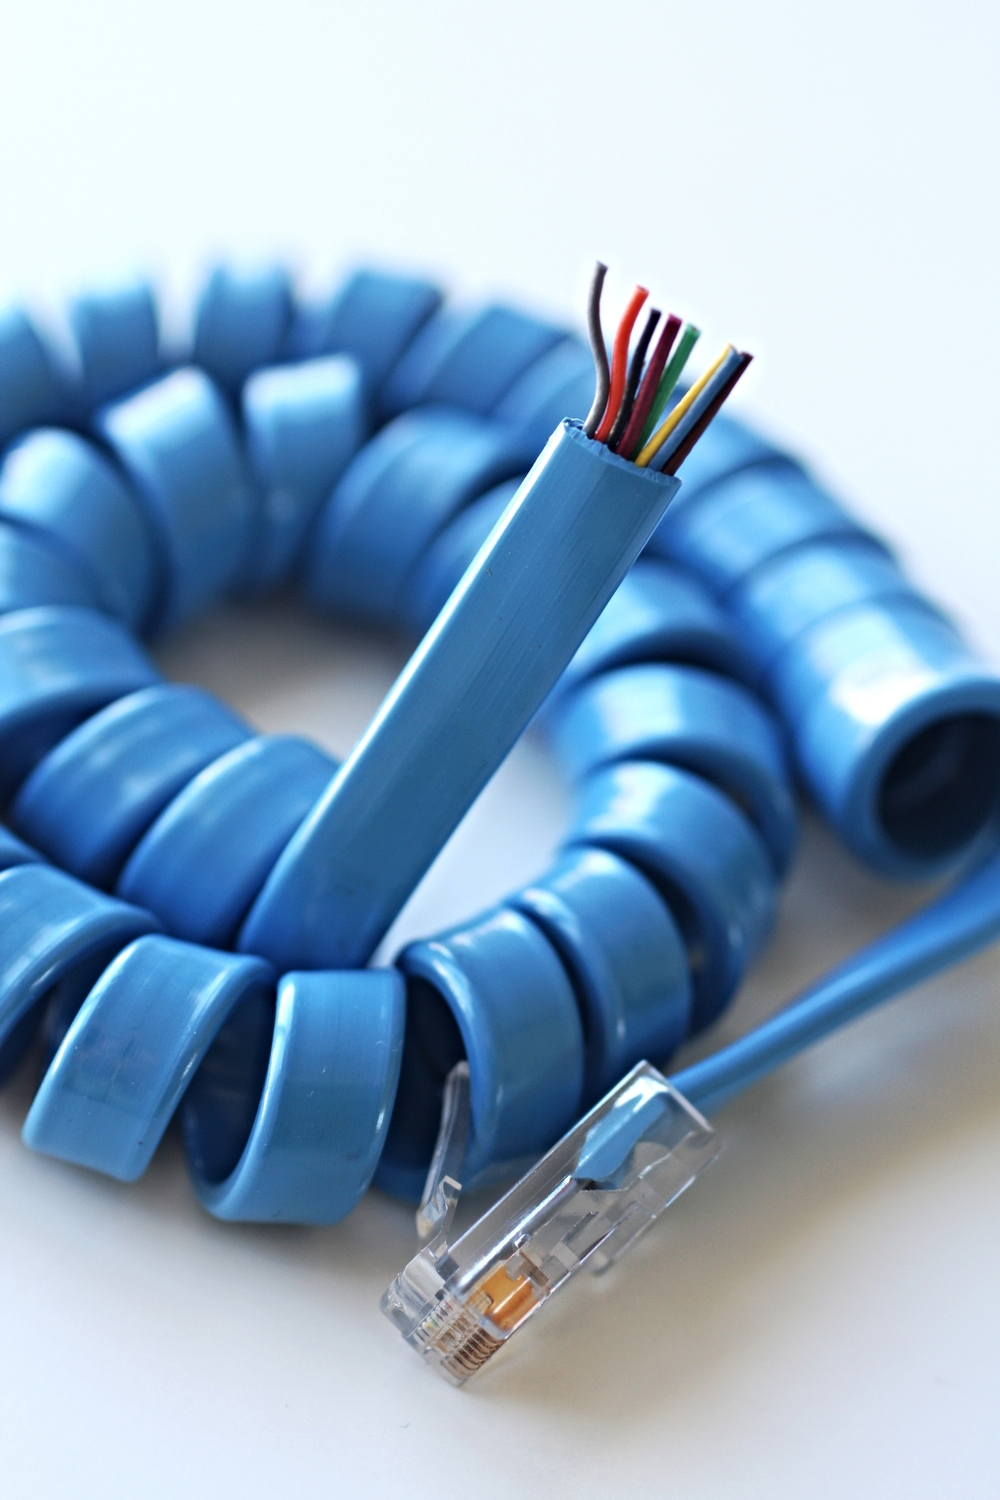 Coil Cords, Cable, and Custom Wire Manufacturer. Coiled cords, coil cords, electrical coil cords, coil cord manufacturer, cables coiled, cord coiled curly, cord electric coiled, cord electrical coiled, cord sets coiled, stock cable cords, cable design services, power cable cords, electronics coil cords, miniature coil cords, modular flat coil cords, modular shielded keyboard coil cord, unshielded flat cable, shielded flat cable.